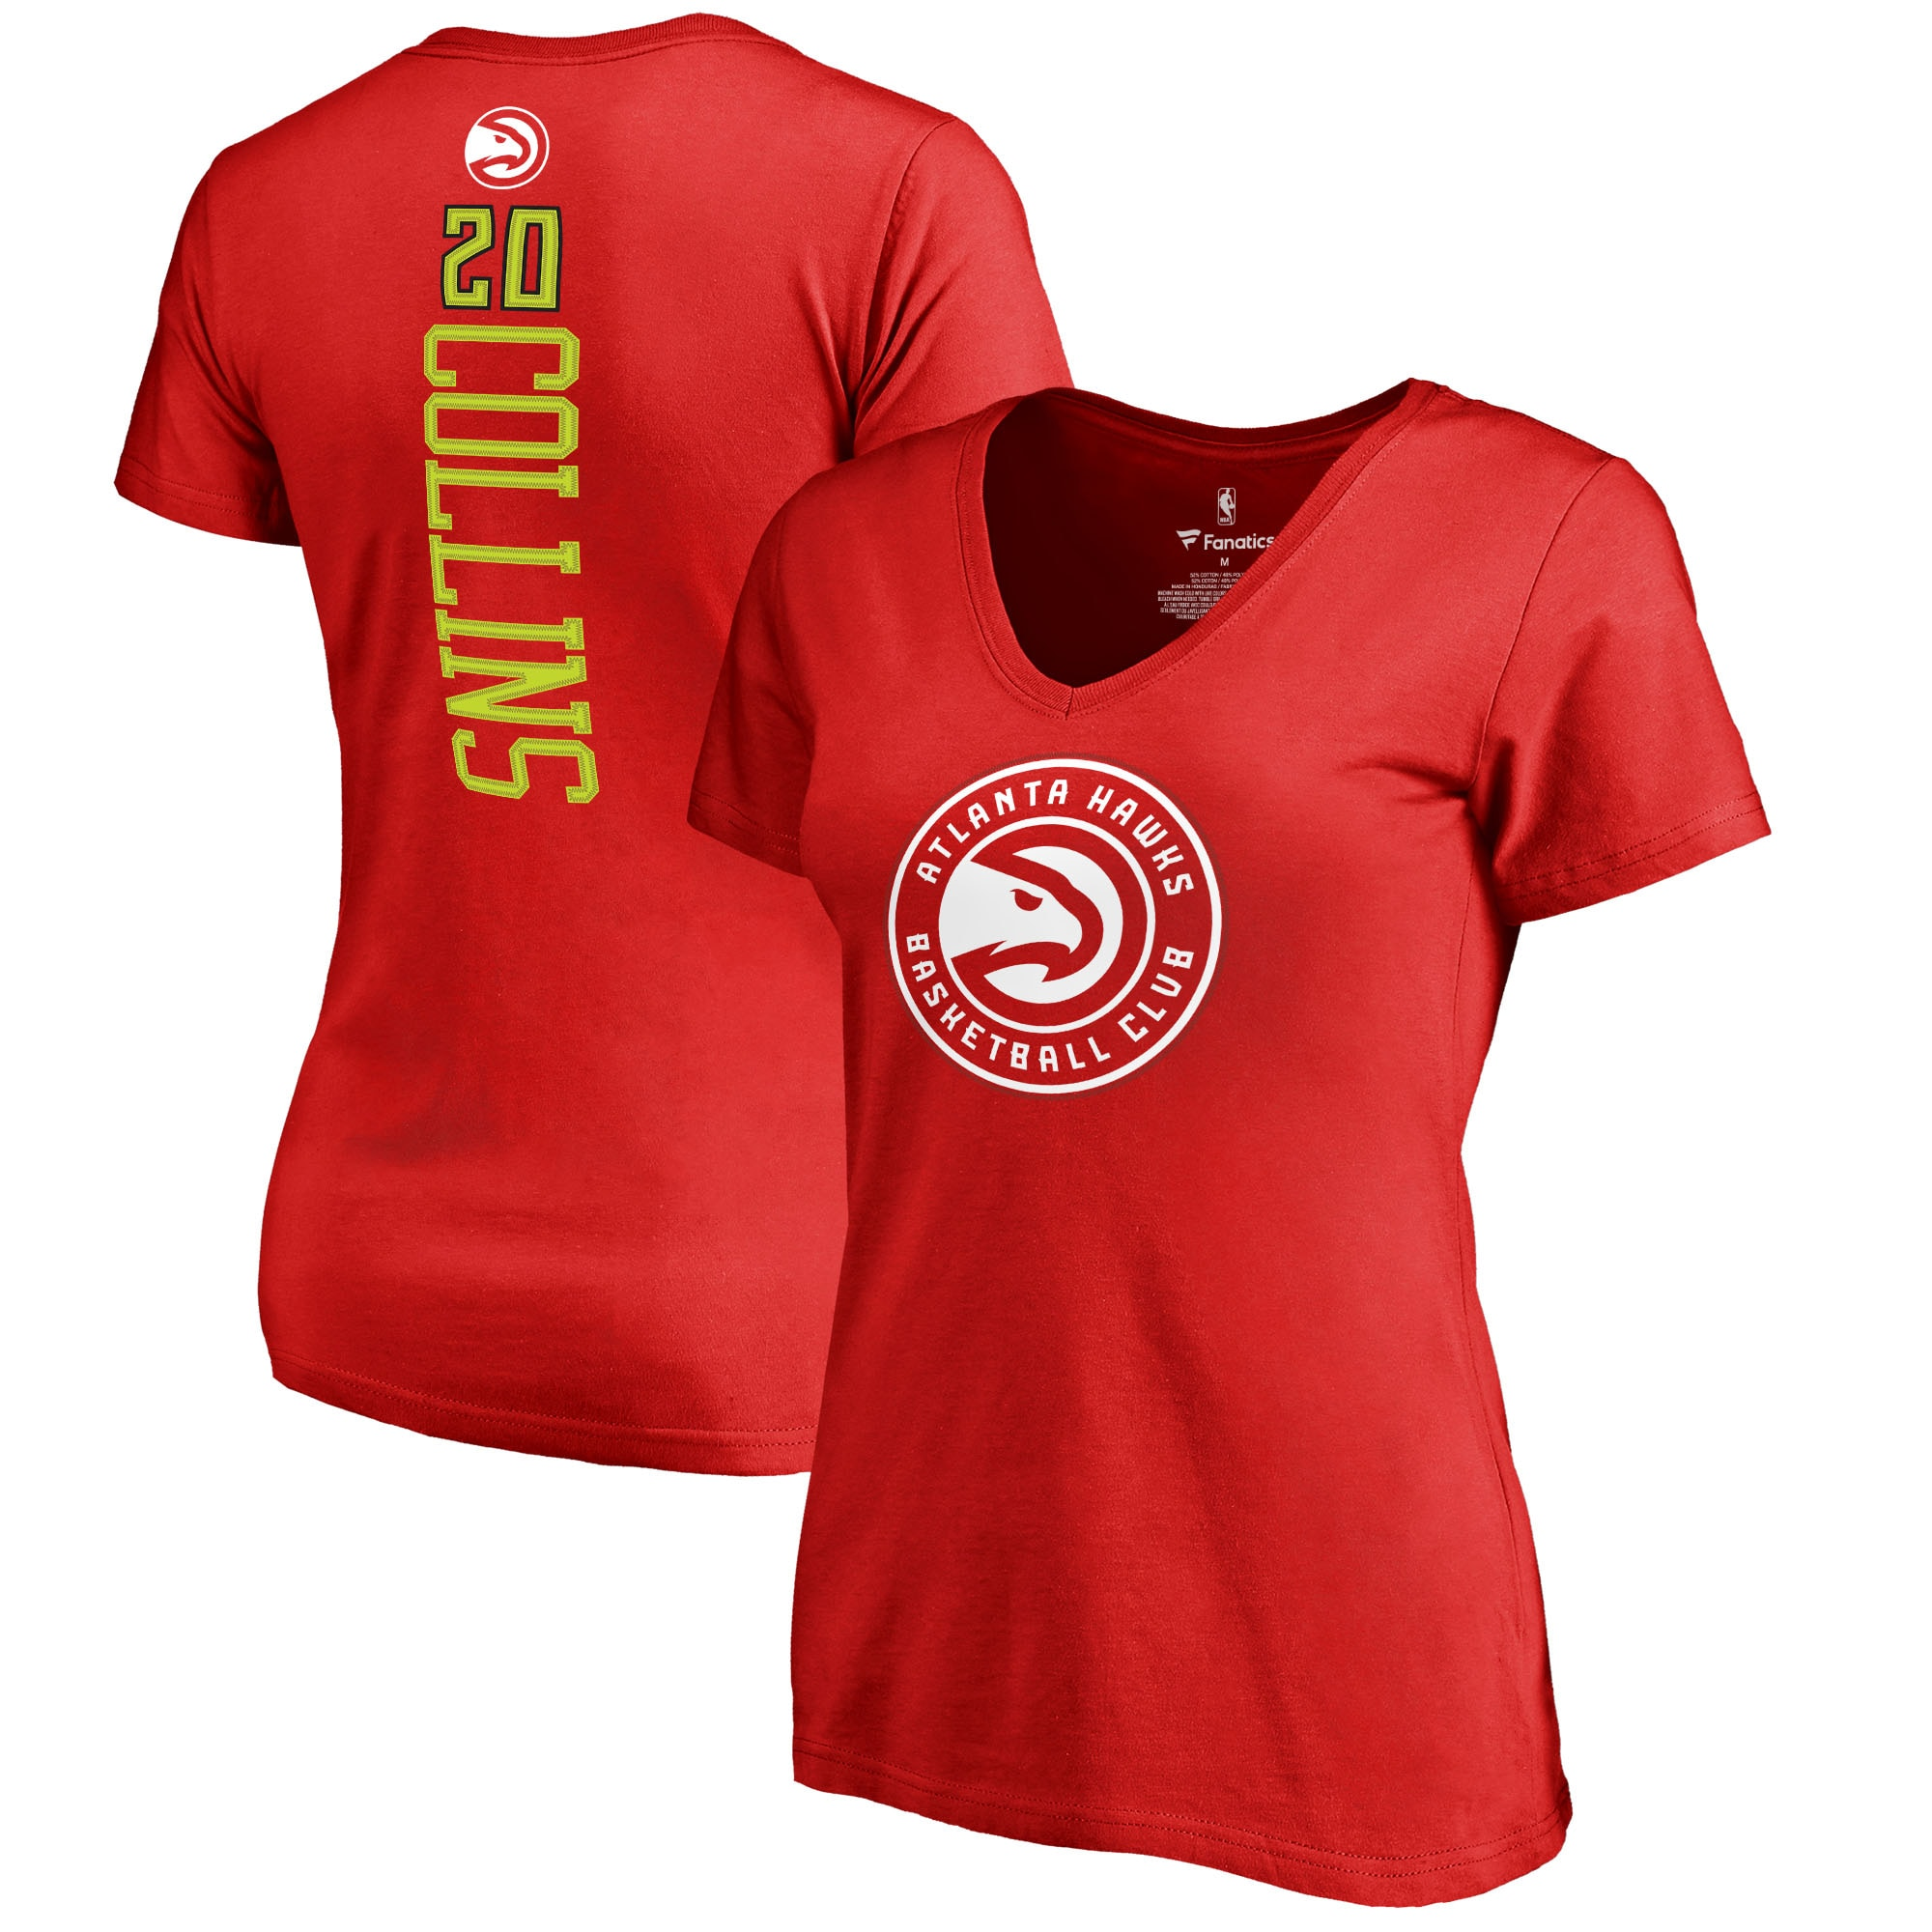 John Collins Atlanta Hawks Fanatics Branded Women's Backer V-Neck T-Shirt - Red